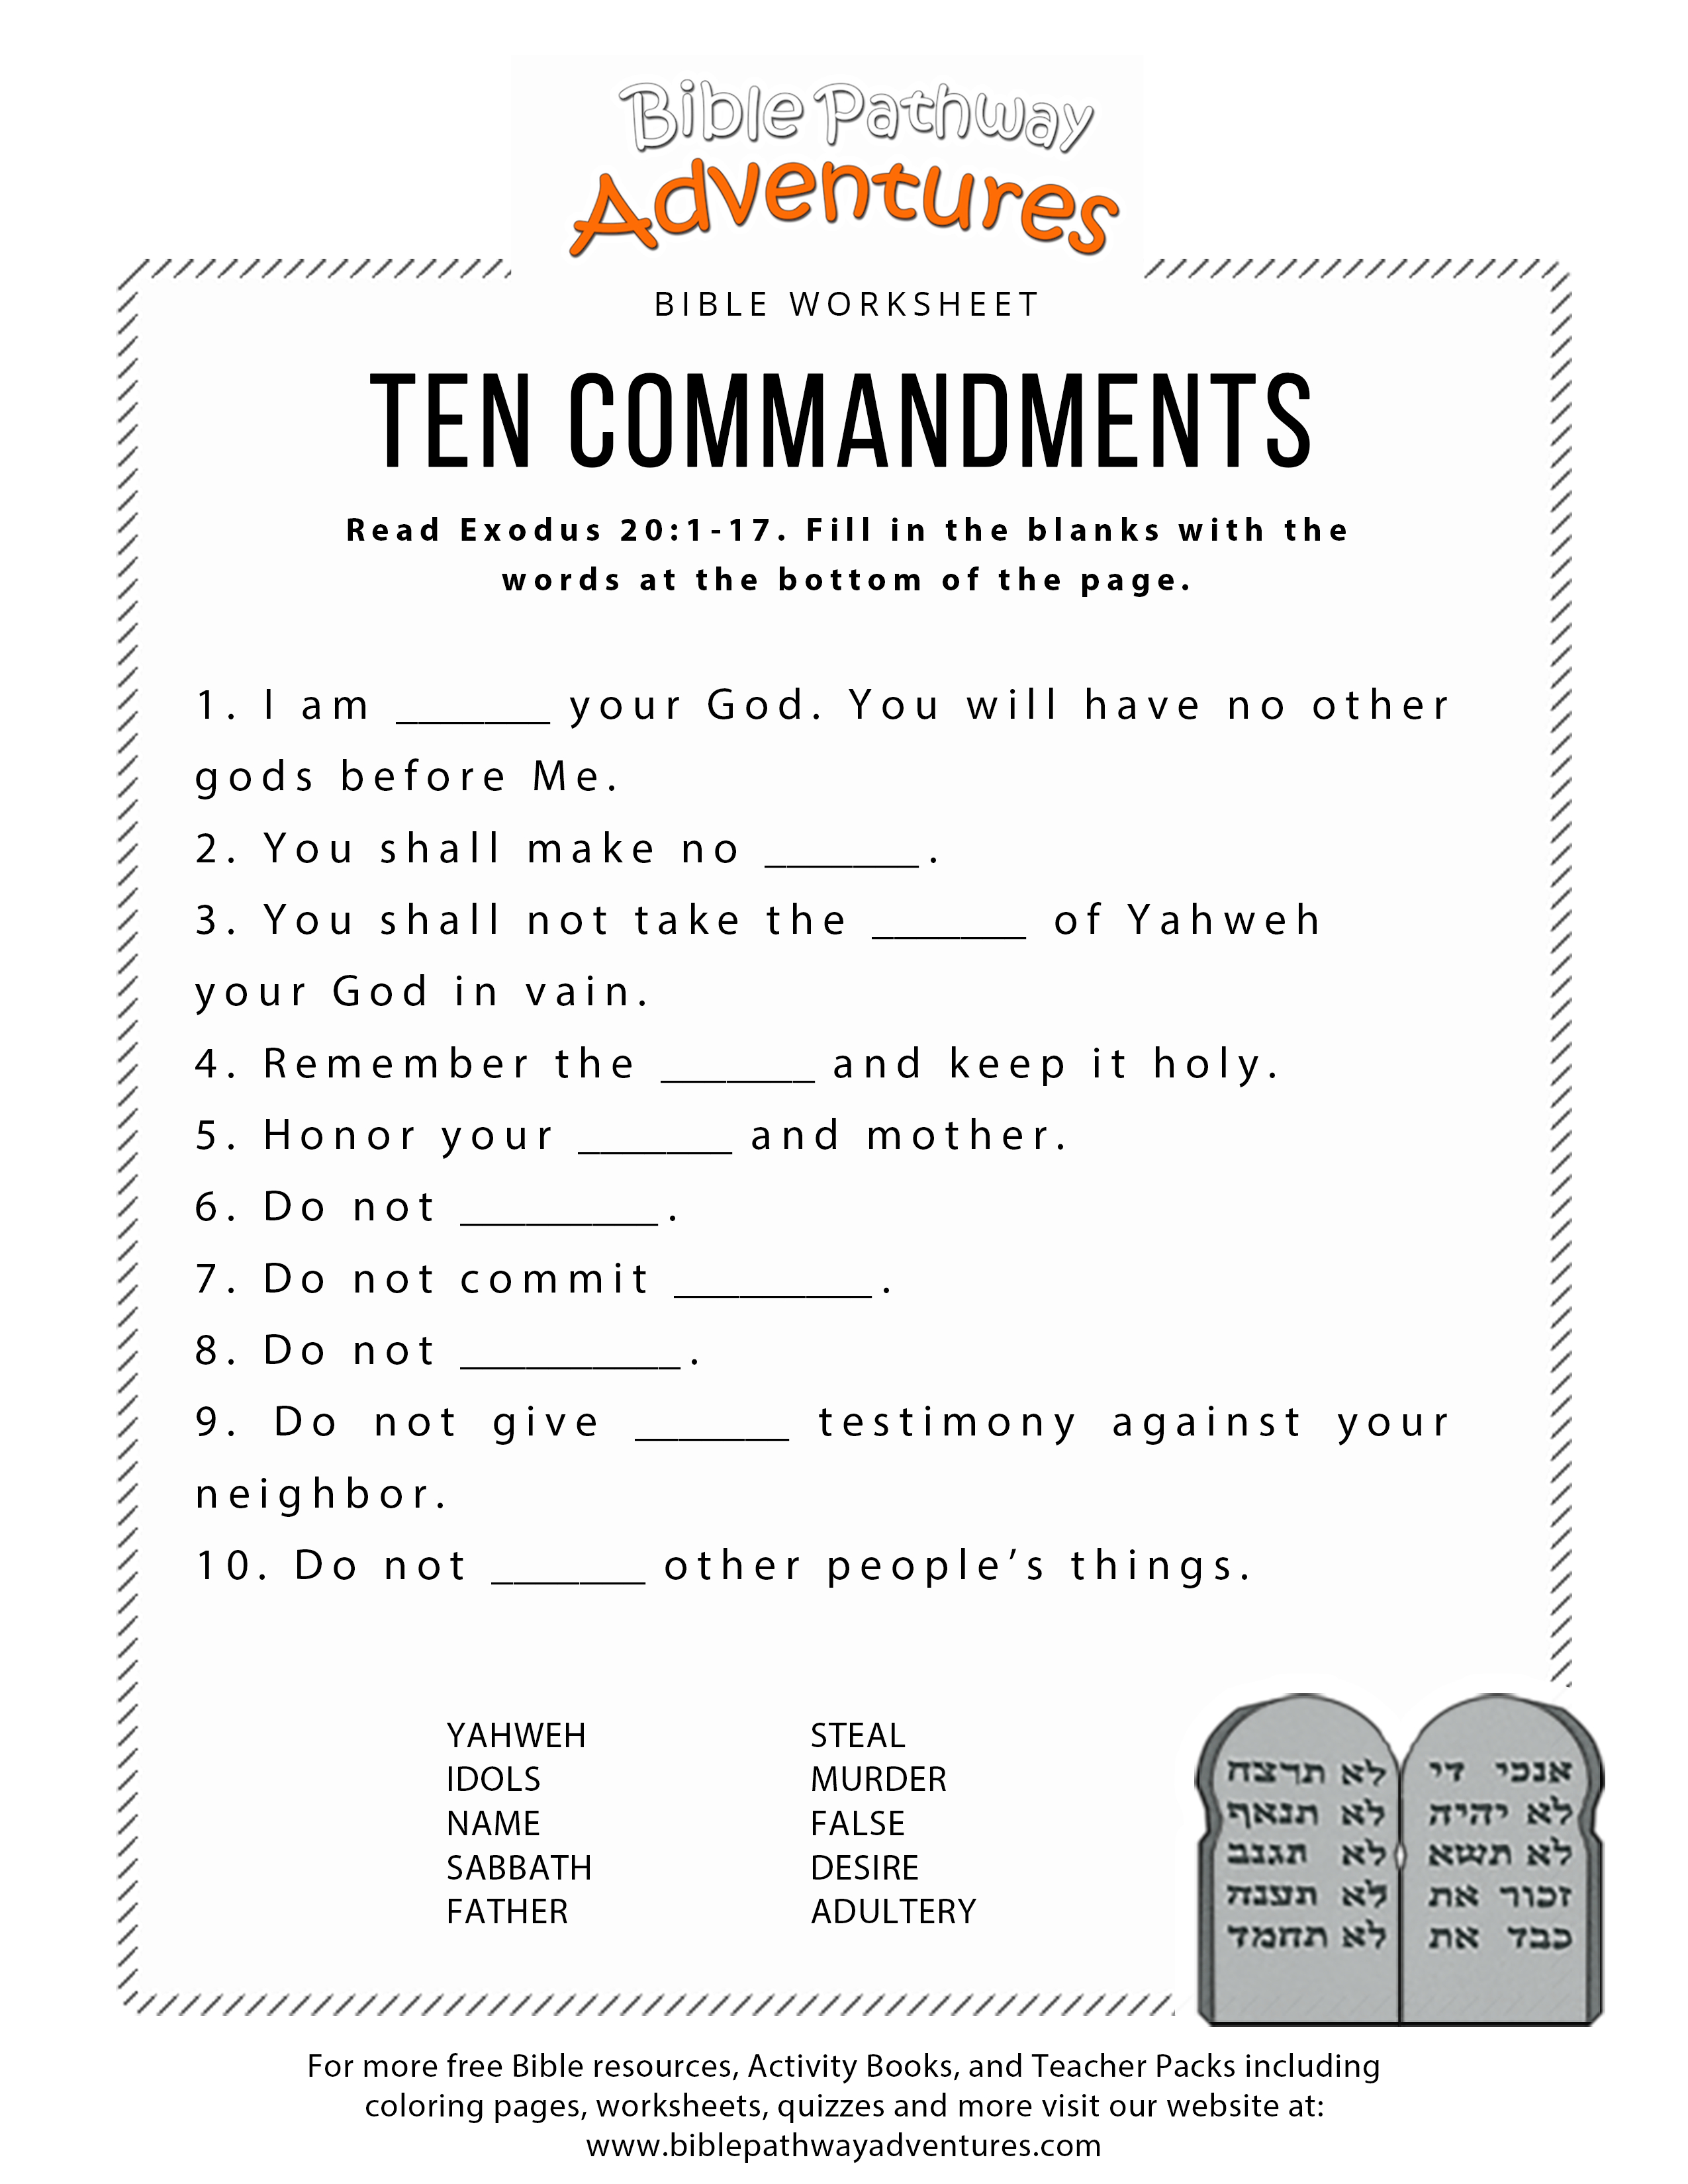 Ten Commandments Worksheet For Kids   Worksheets For Psr   Bible - Free Printable Youth Bible Study Lessons